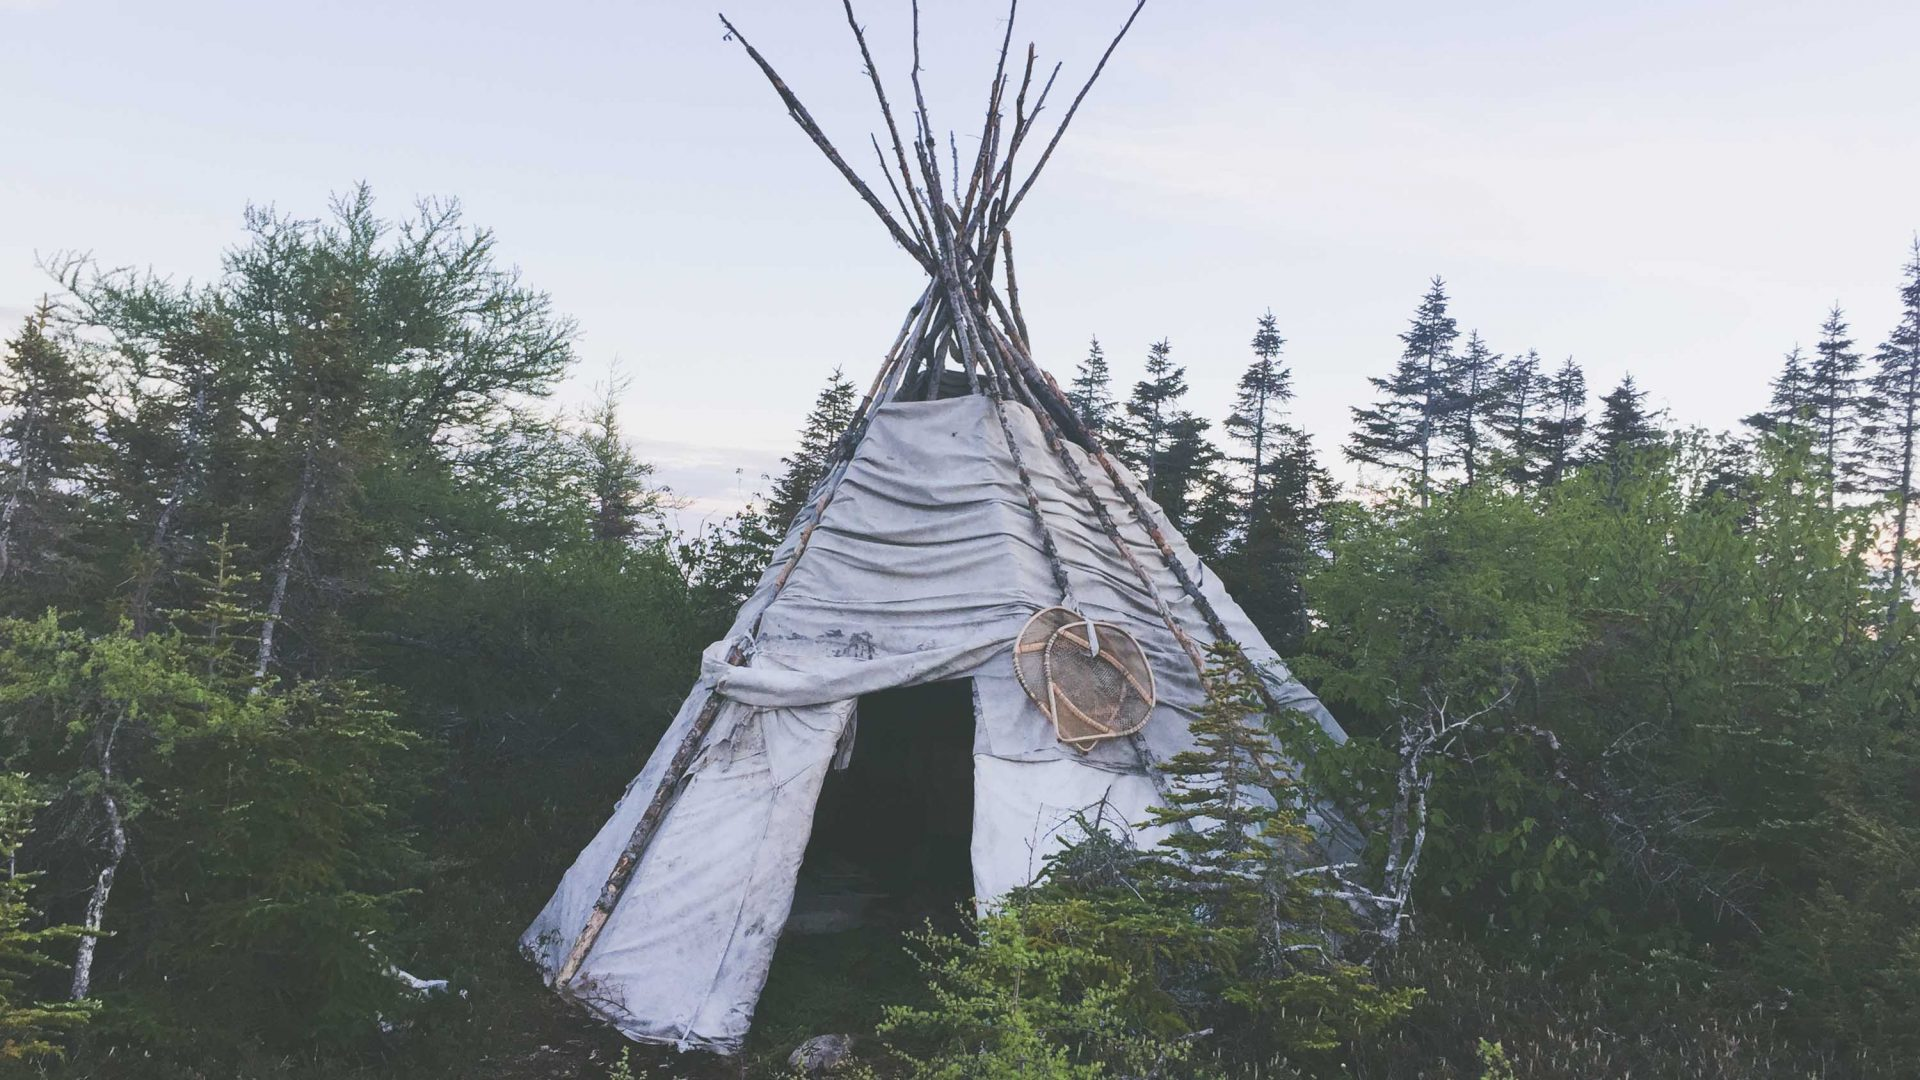 In Saint-Augustin, an Innu man has set up his tipi with his family in view of the cargo ship with a view to help share his culture with visitors.